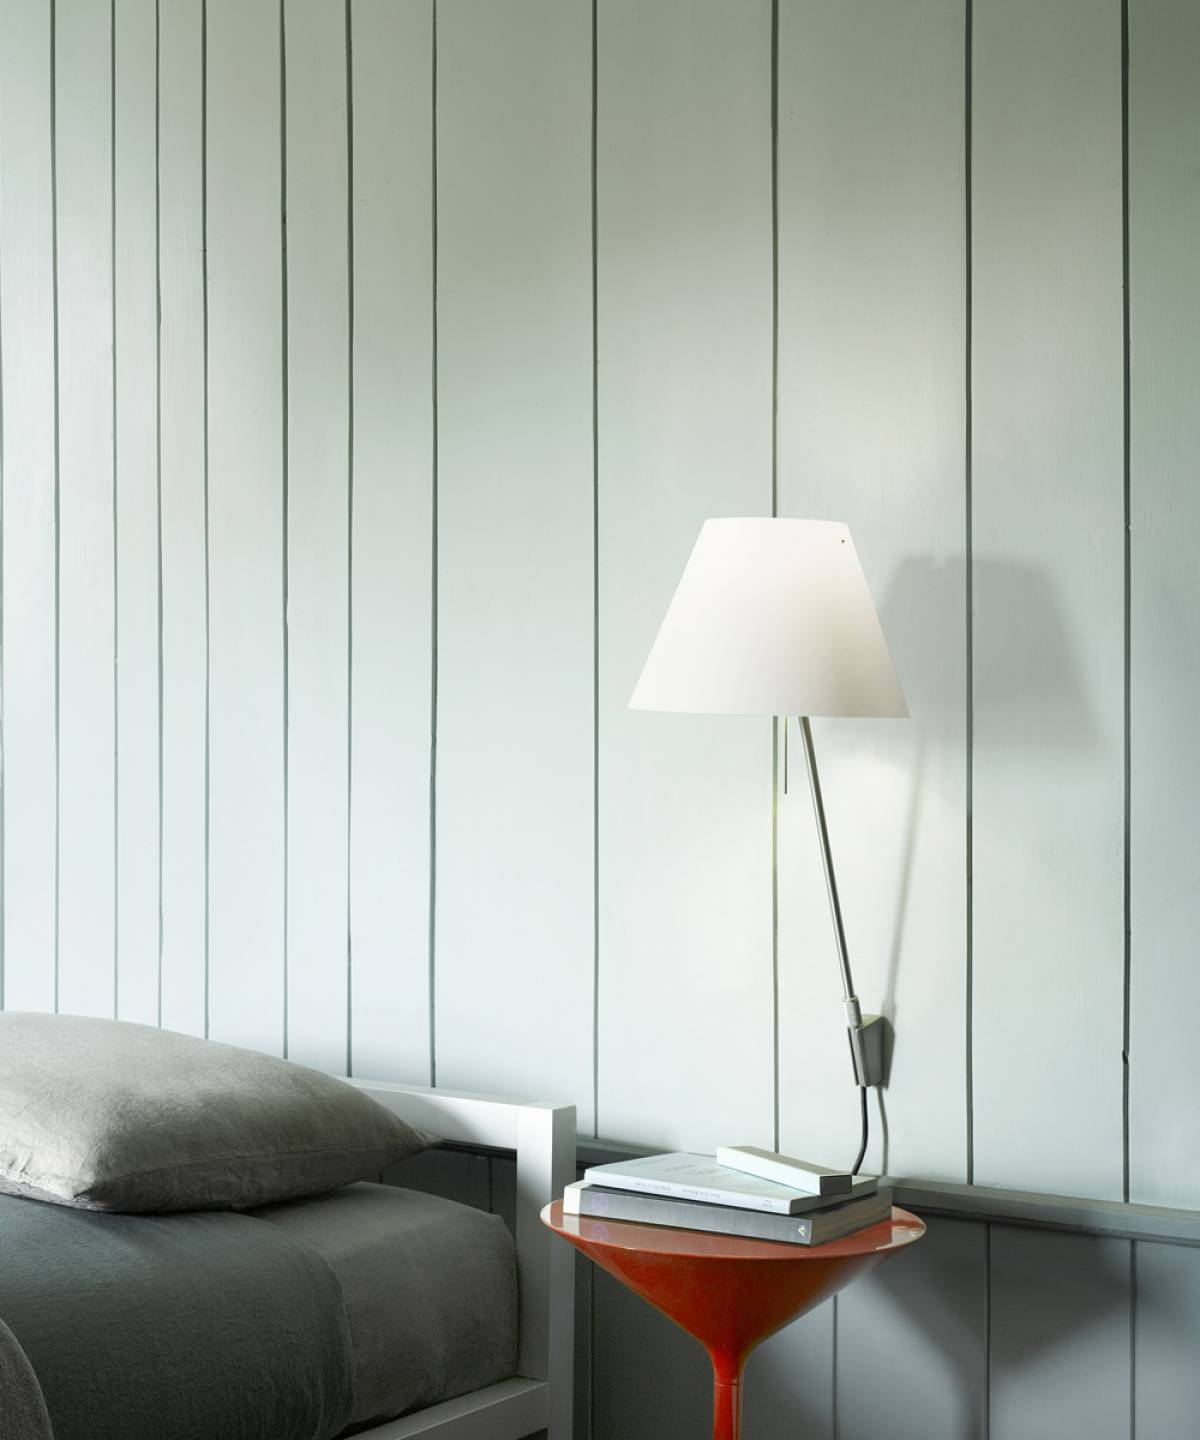 Costanzina wall lamp Luceplan